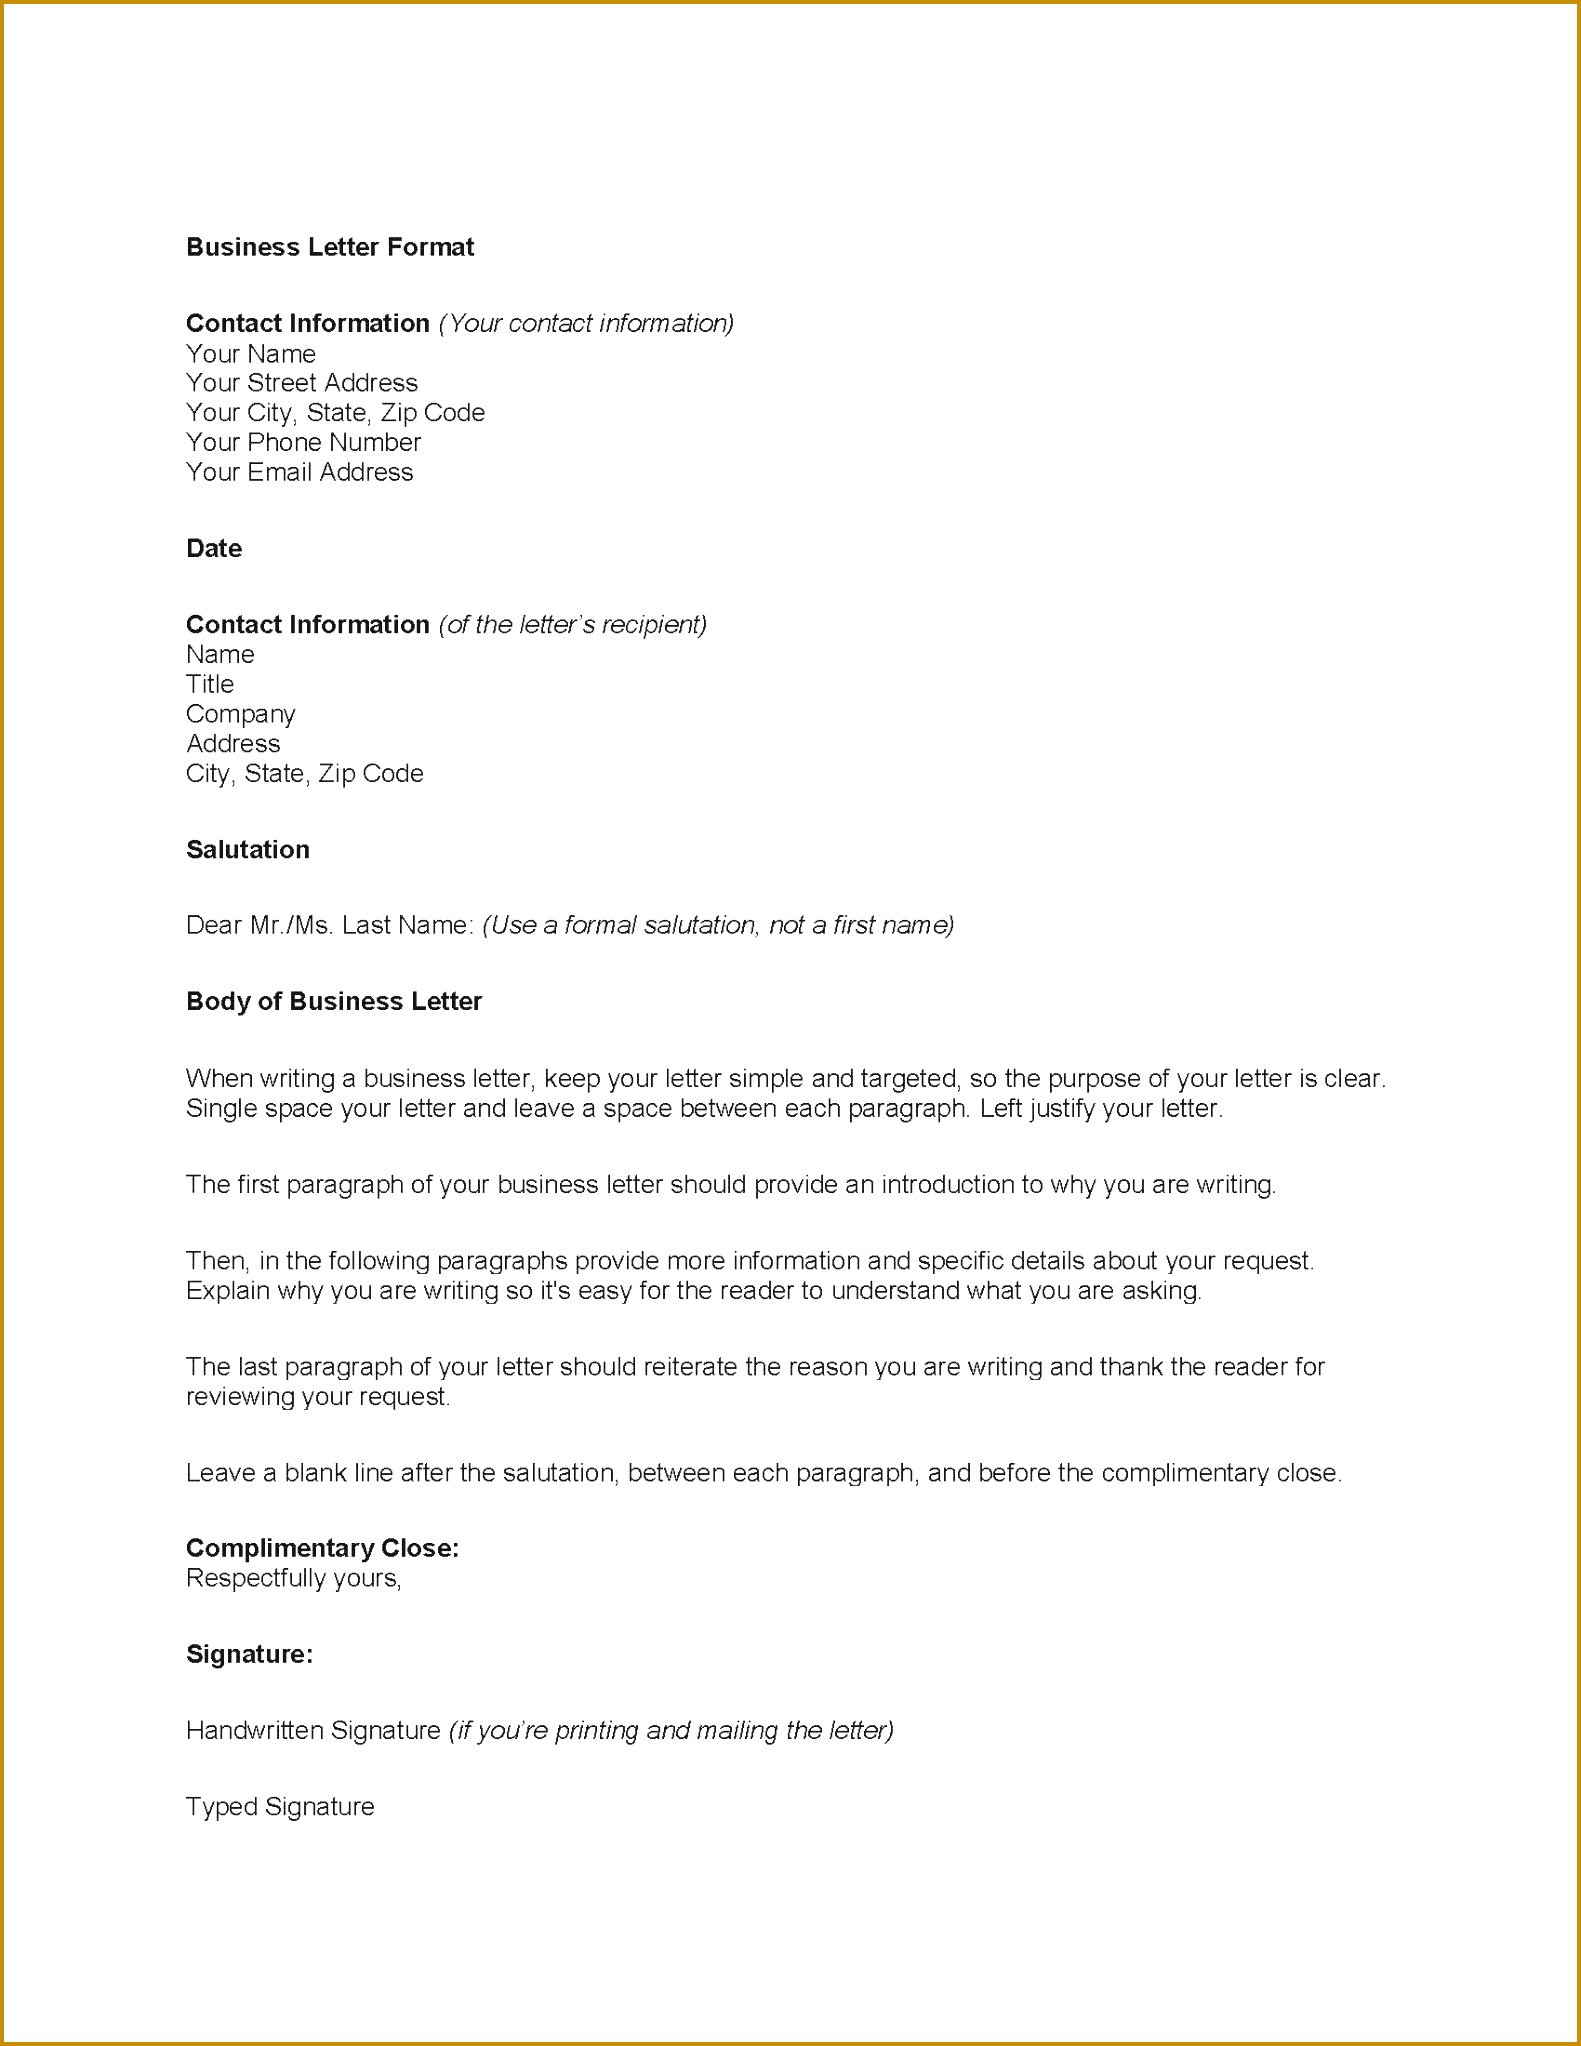 Body A Cover Letter New 20 Awesome General Letter Template Uk 15812046